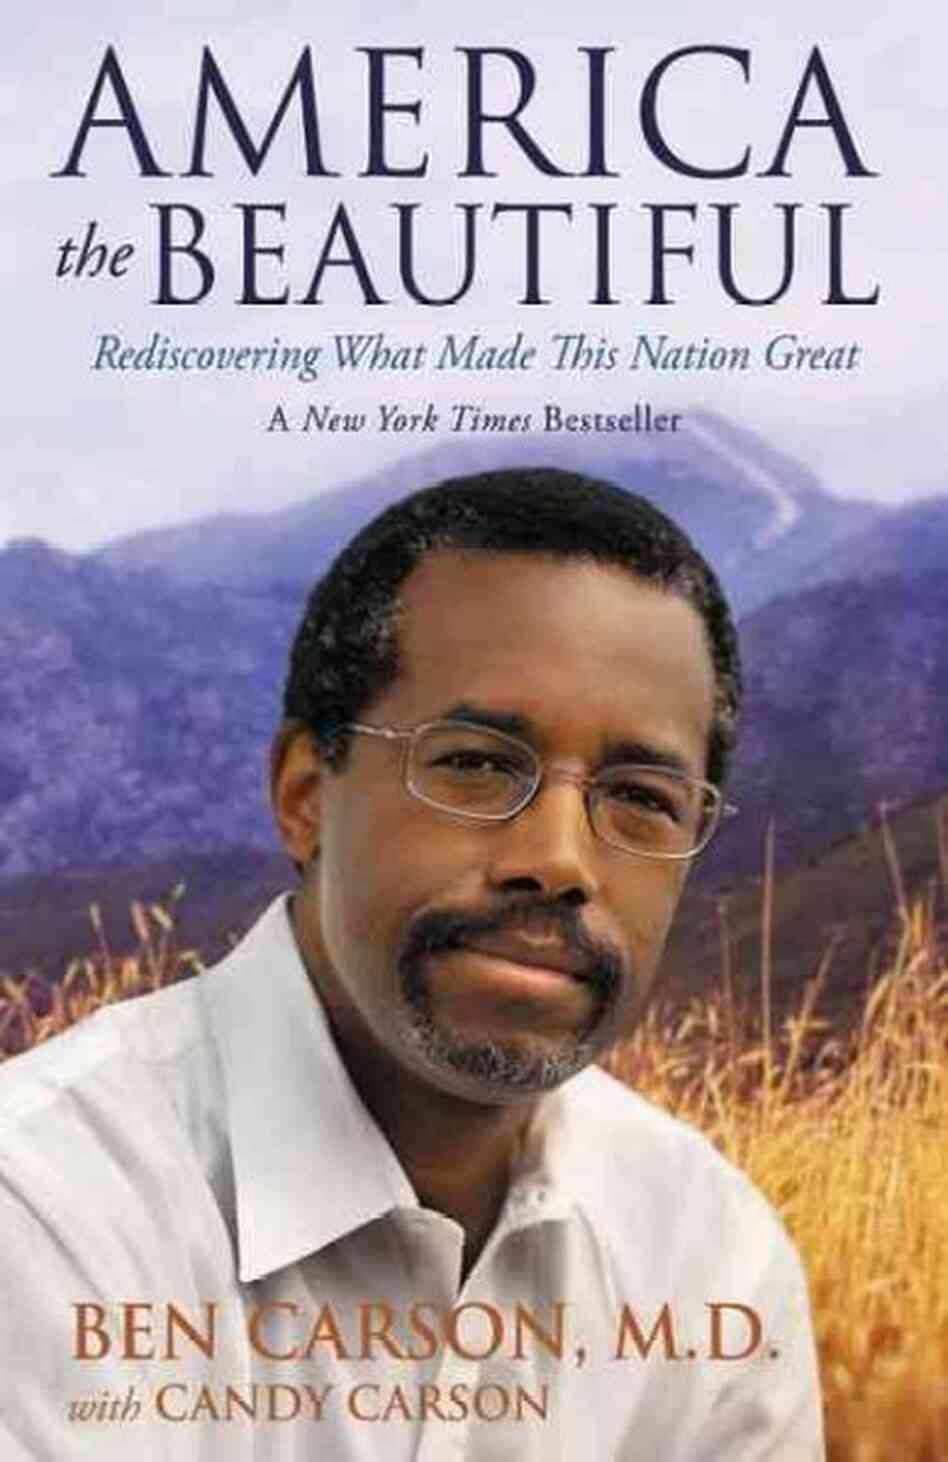 the importance of parenting in the life of benjamin carson Ben carson is an american neurosurgeon, author, philanthropist and 2016 republican presidential candidate he's best know for separating conjoined twins carson was born to parents 'sonya' and 'robert carson on september 18, 1951 in detroit, michigan.